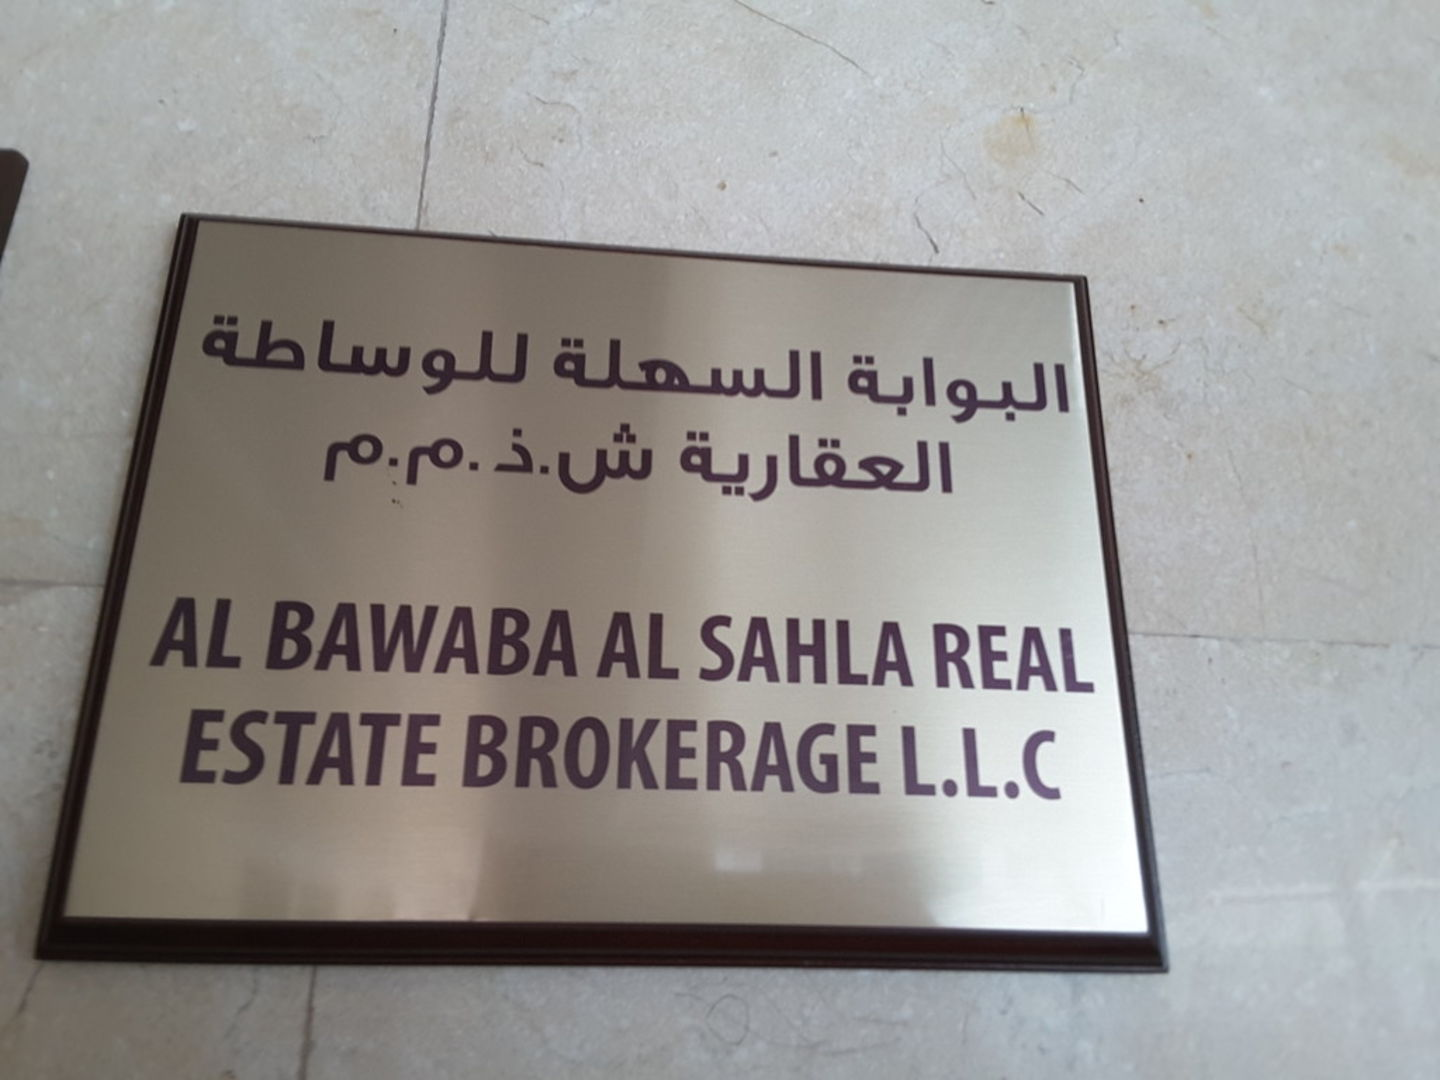 HiDubai-business-al-bawaba-al-sahla-real-estate-brokerage-housing-real-estate-real-estate-agencies-port-saeed-dubai-2